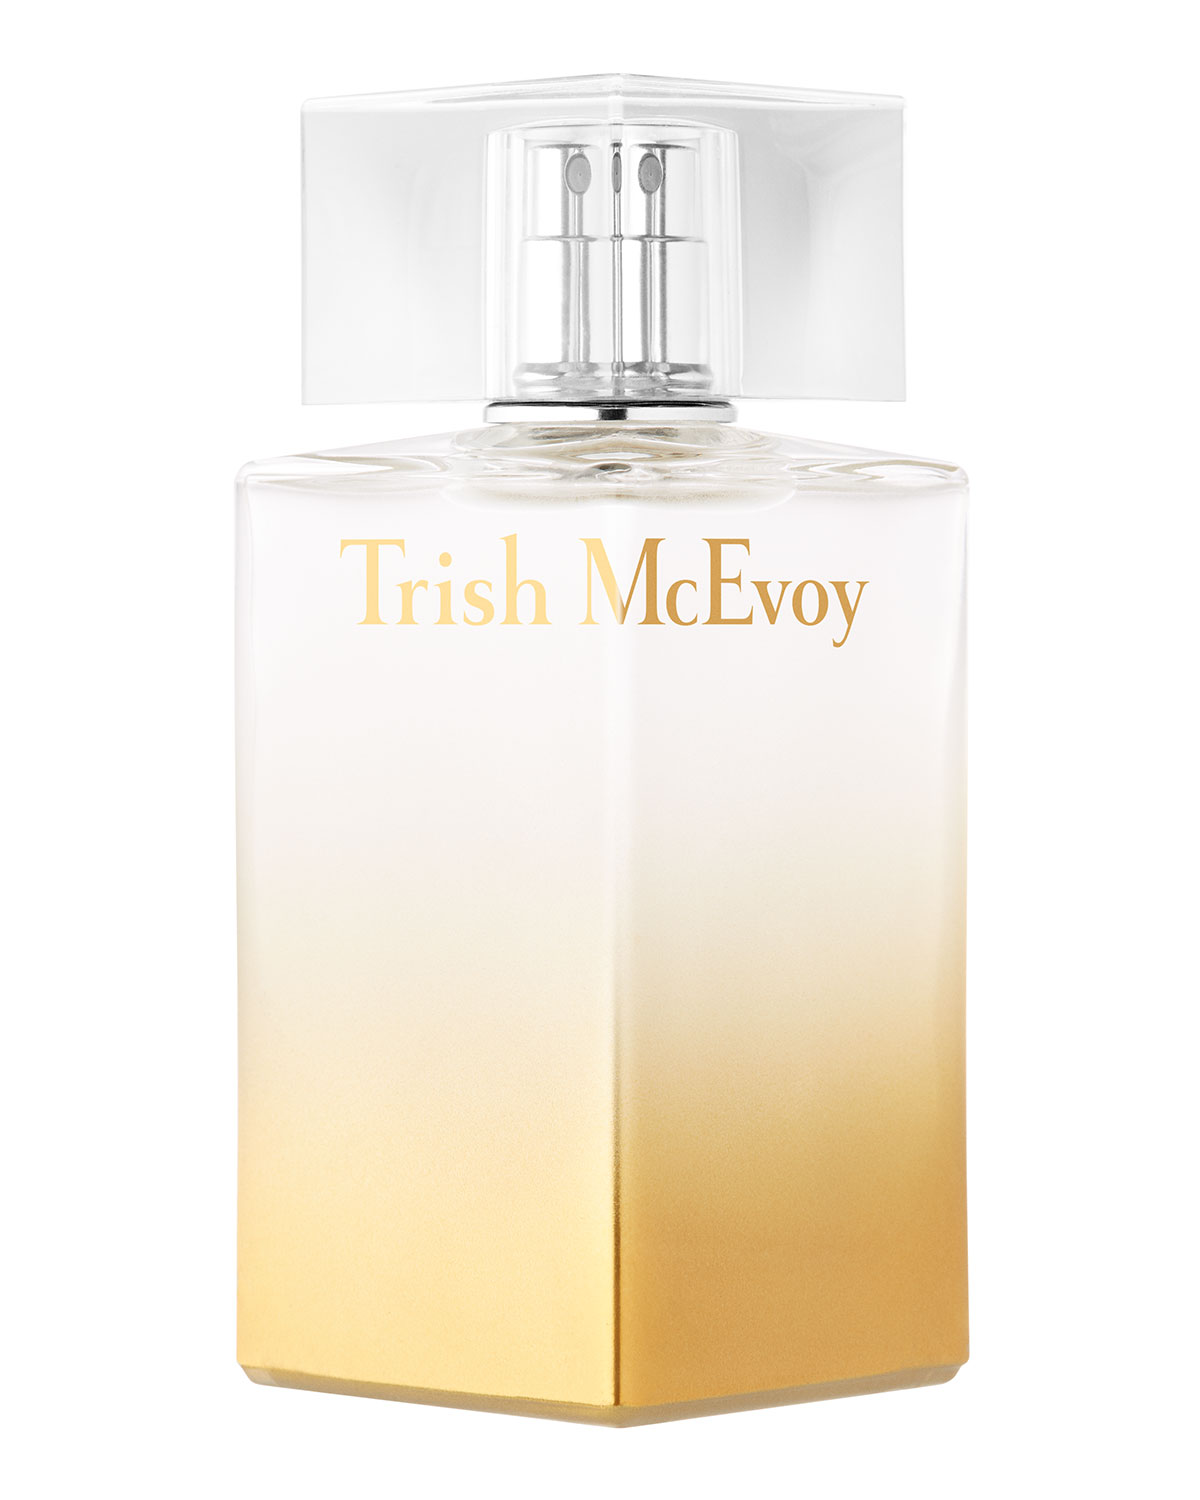 Trish Mcevoy GOLD 9, 1.7 OZ./ 50 ML